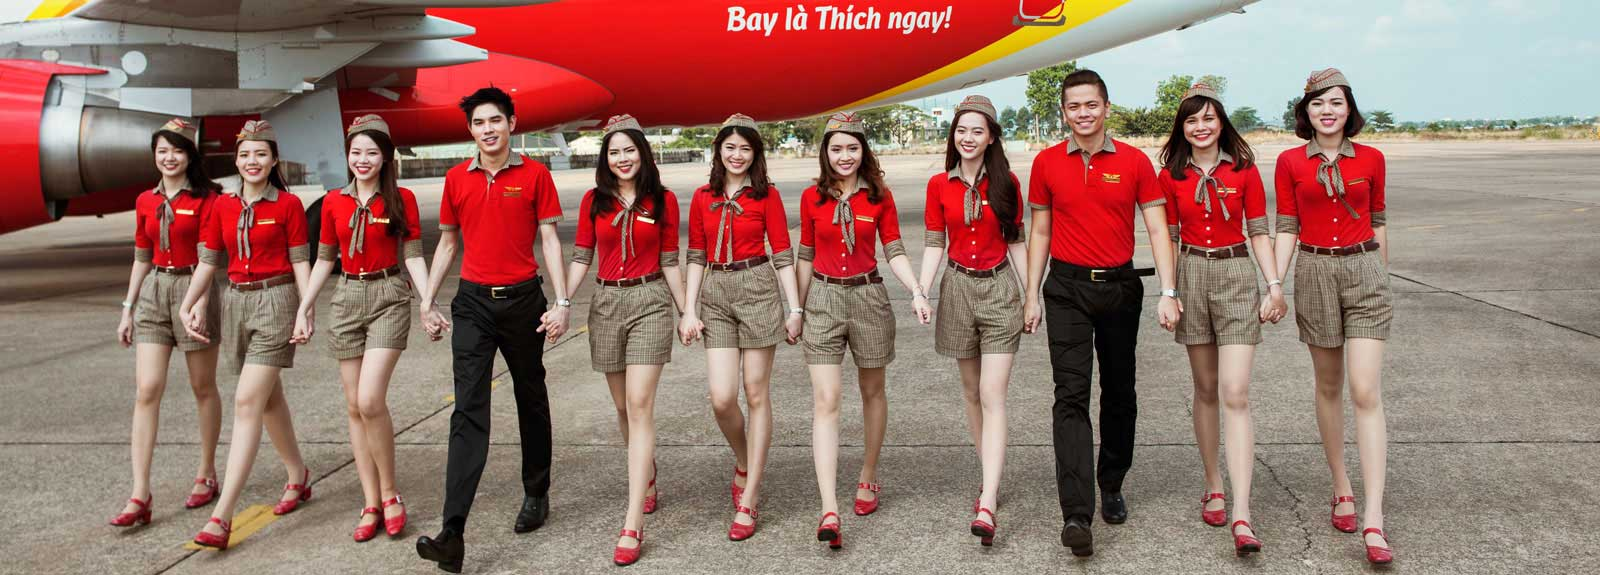 Image from Vietjet Air